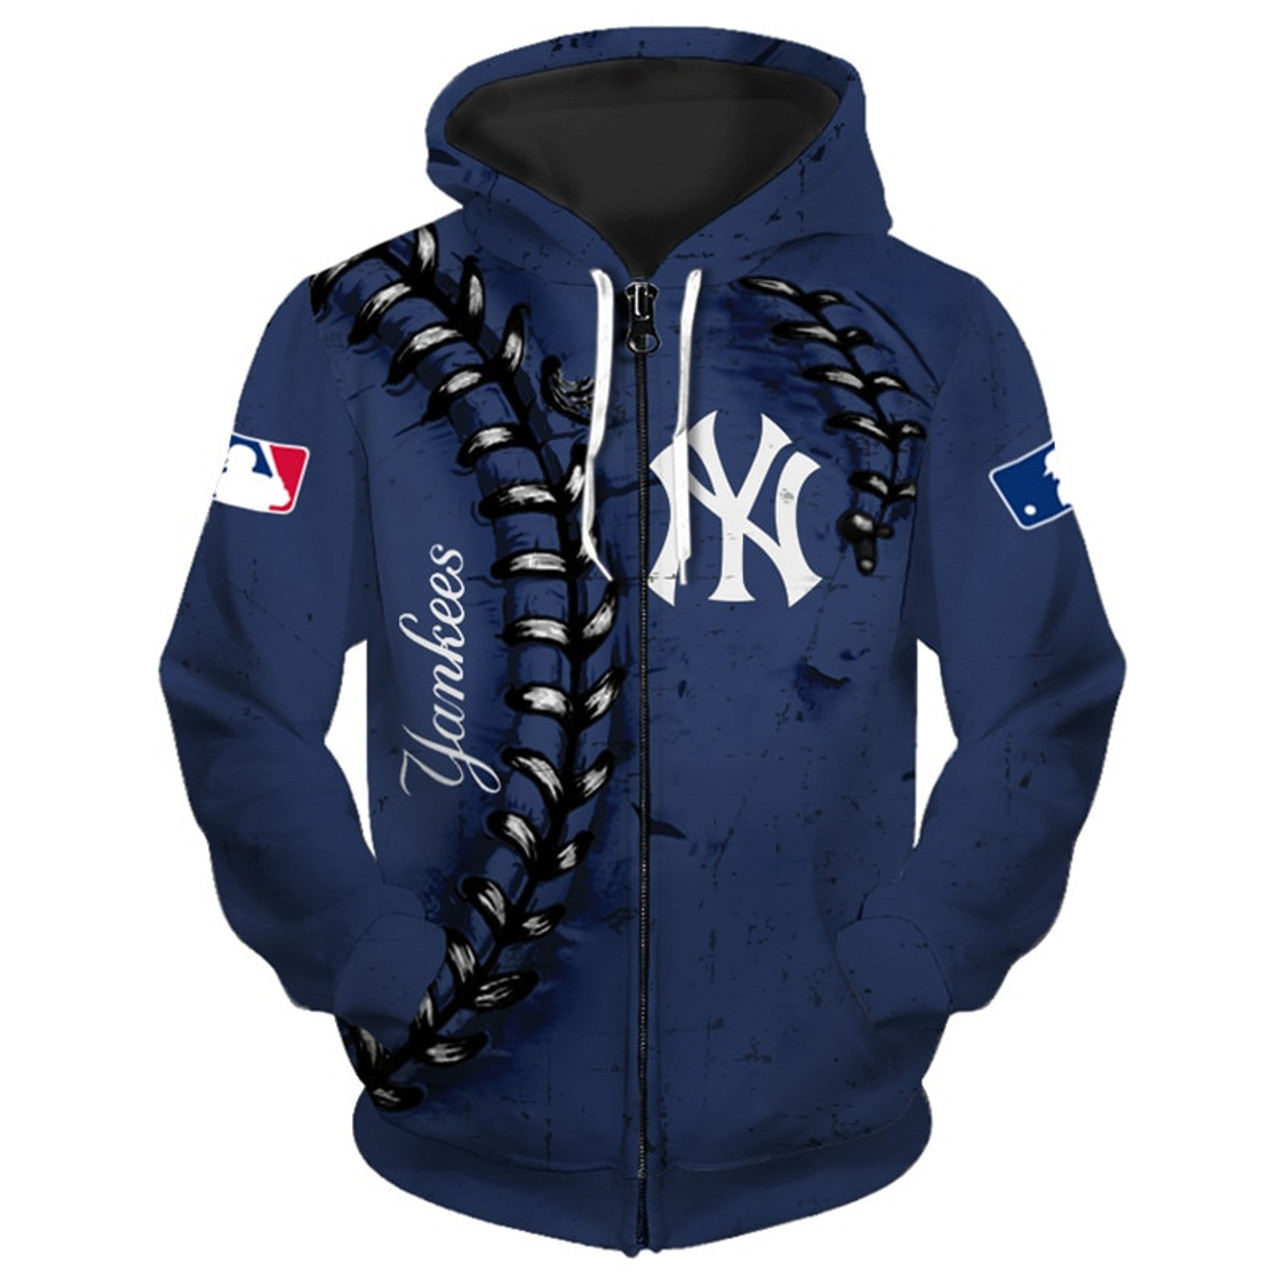 **(OFFICIALLY-LICENSED-M.L.B. NEW-YORK-YANKEES-TEAM-HOODIES/NICE-CUSTOM-DETAILED-3D-GRAPHIC-PRINTED/PREMIUM-ALL-OVER-DOUBLE-SIDED-PRINT/OFFICIAL-YANKEES-TEAM-COLORS & CLASSIC-YANKEES-BASEBALL-3D-STITCHING-GRAPHICS/PREMIUM-ZIPPERED-FRONT-HOODIES)**